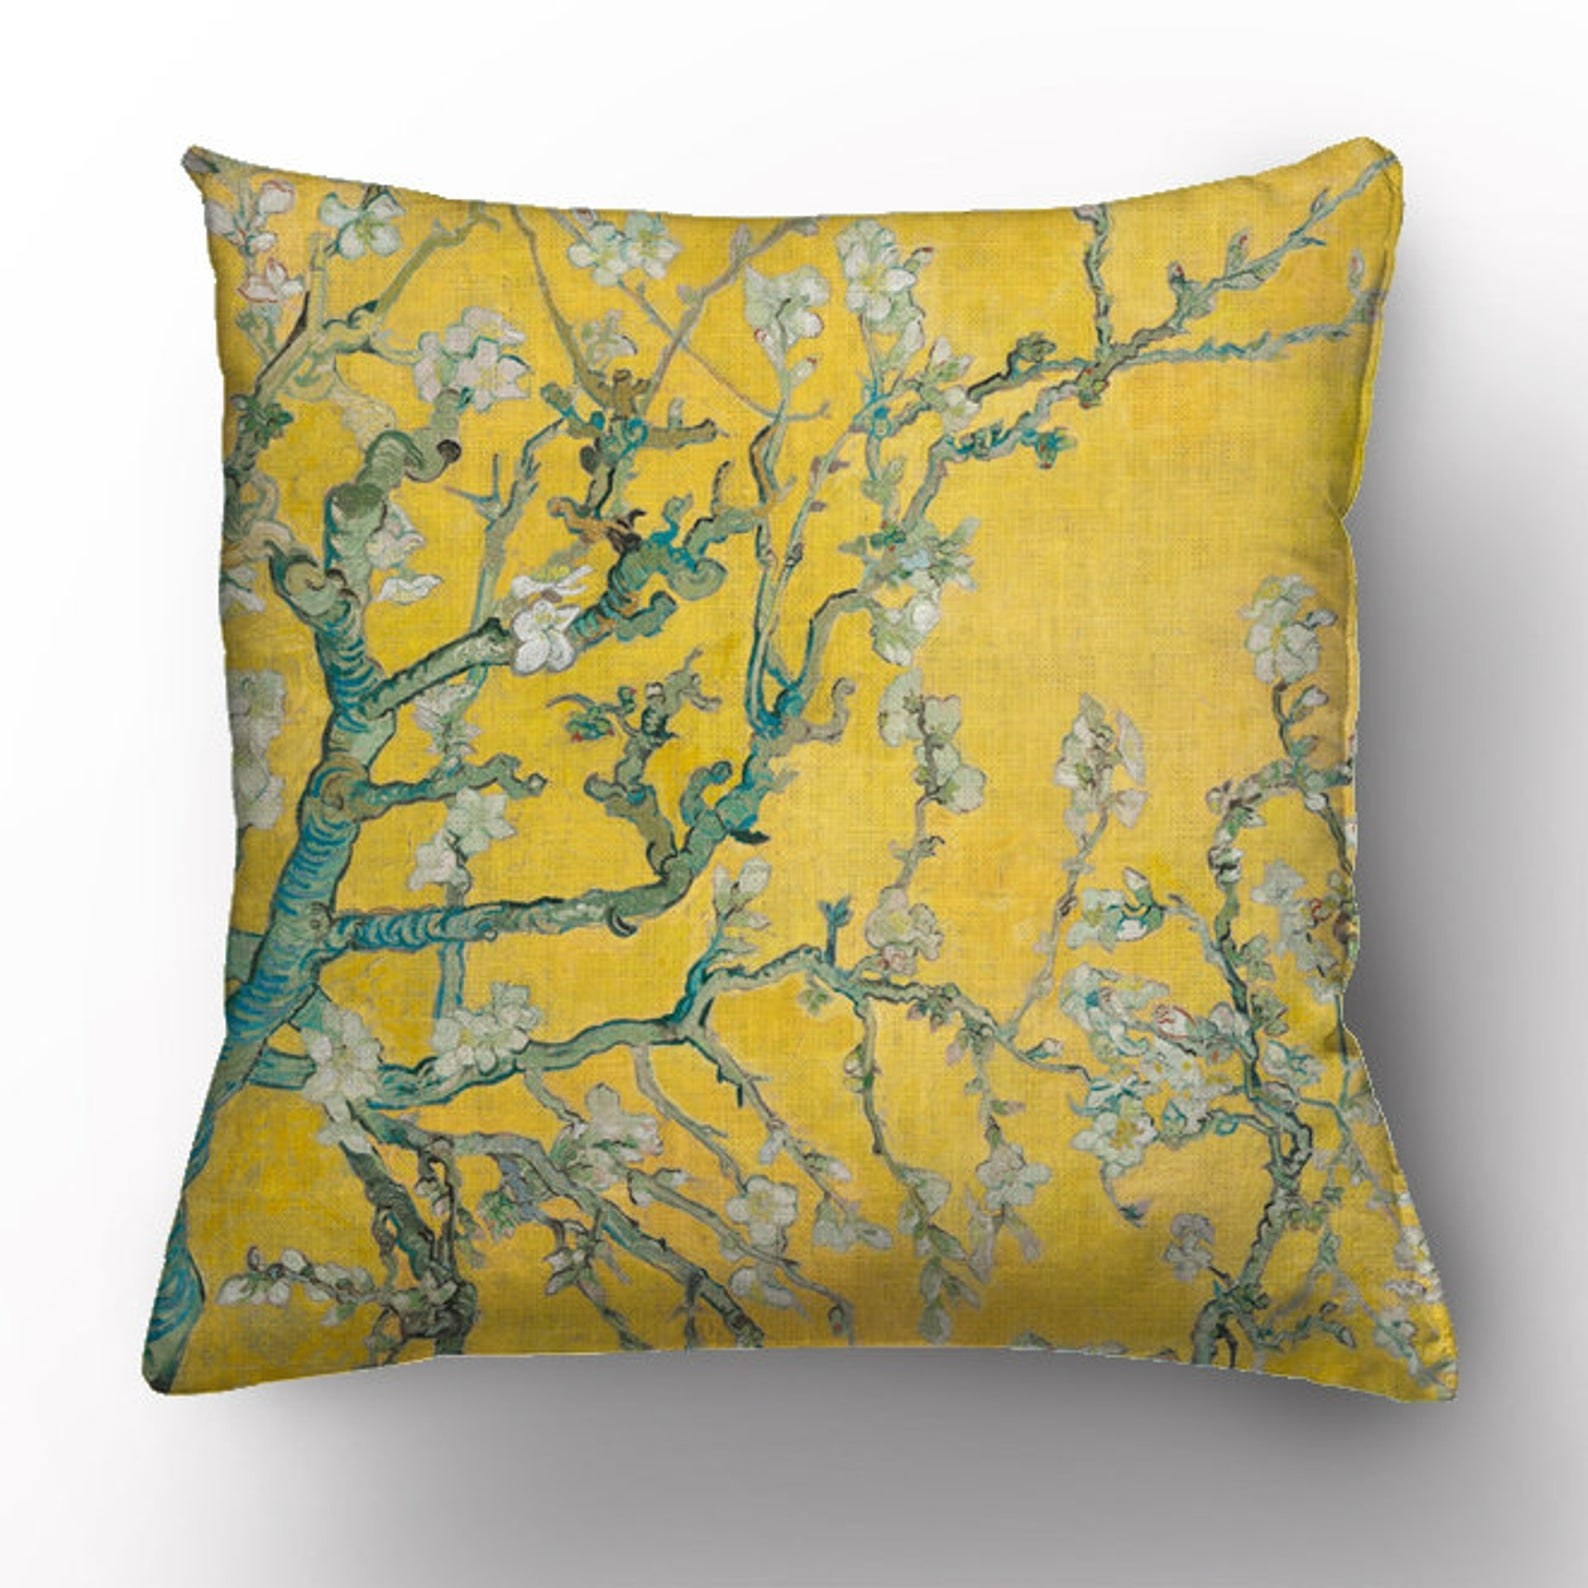 The yellow almond blossom Van Gogh-inspired pillow